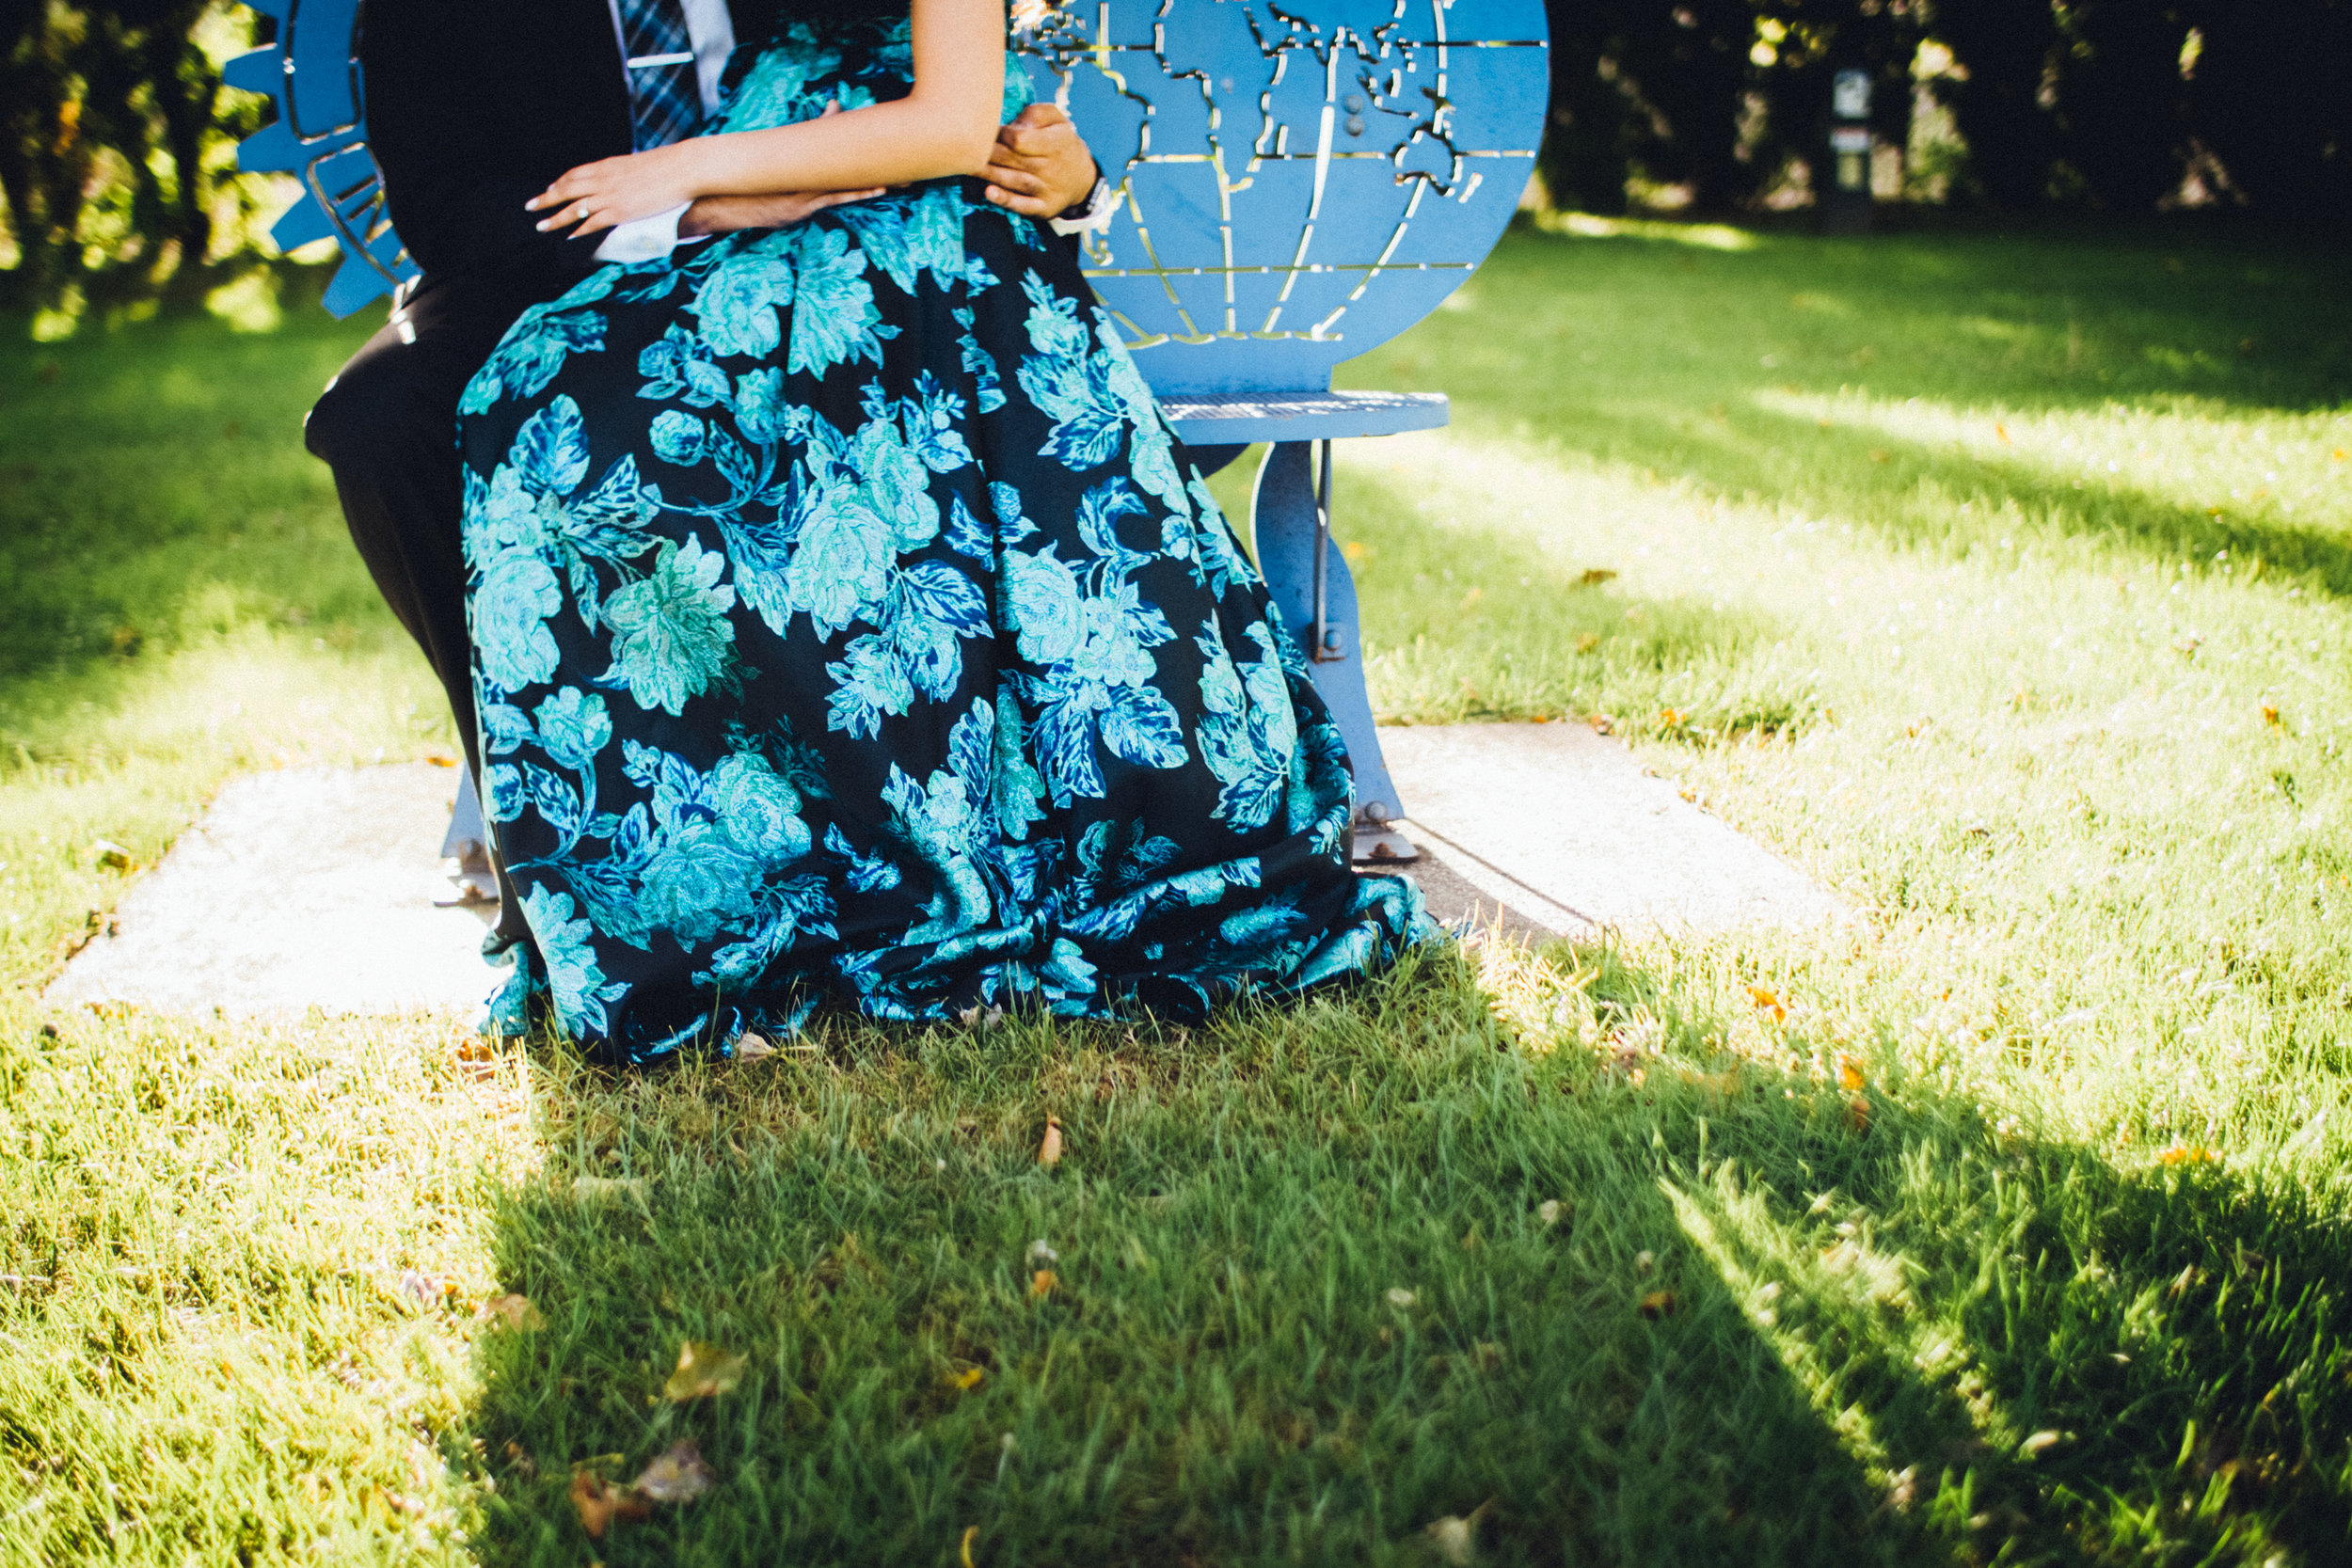 Shadow-Shine-Pictures-Wedding-Photgraphy-Photgrapher-Photograhers-Cinematographer-Cinematographers-Cinematography-West-Michigan-Grand-Rapids-003